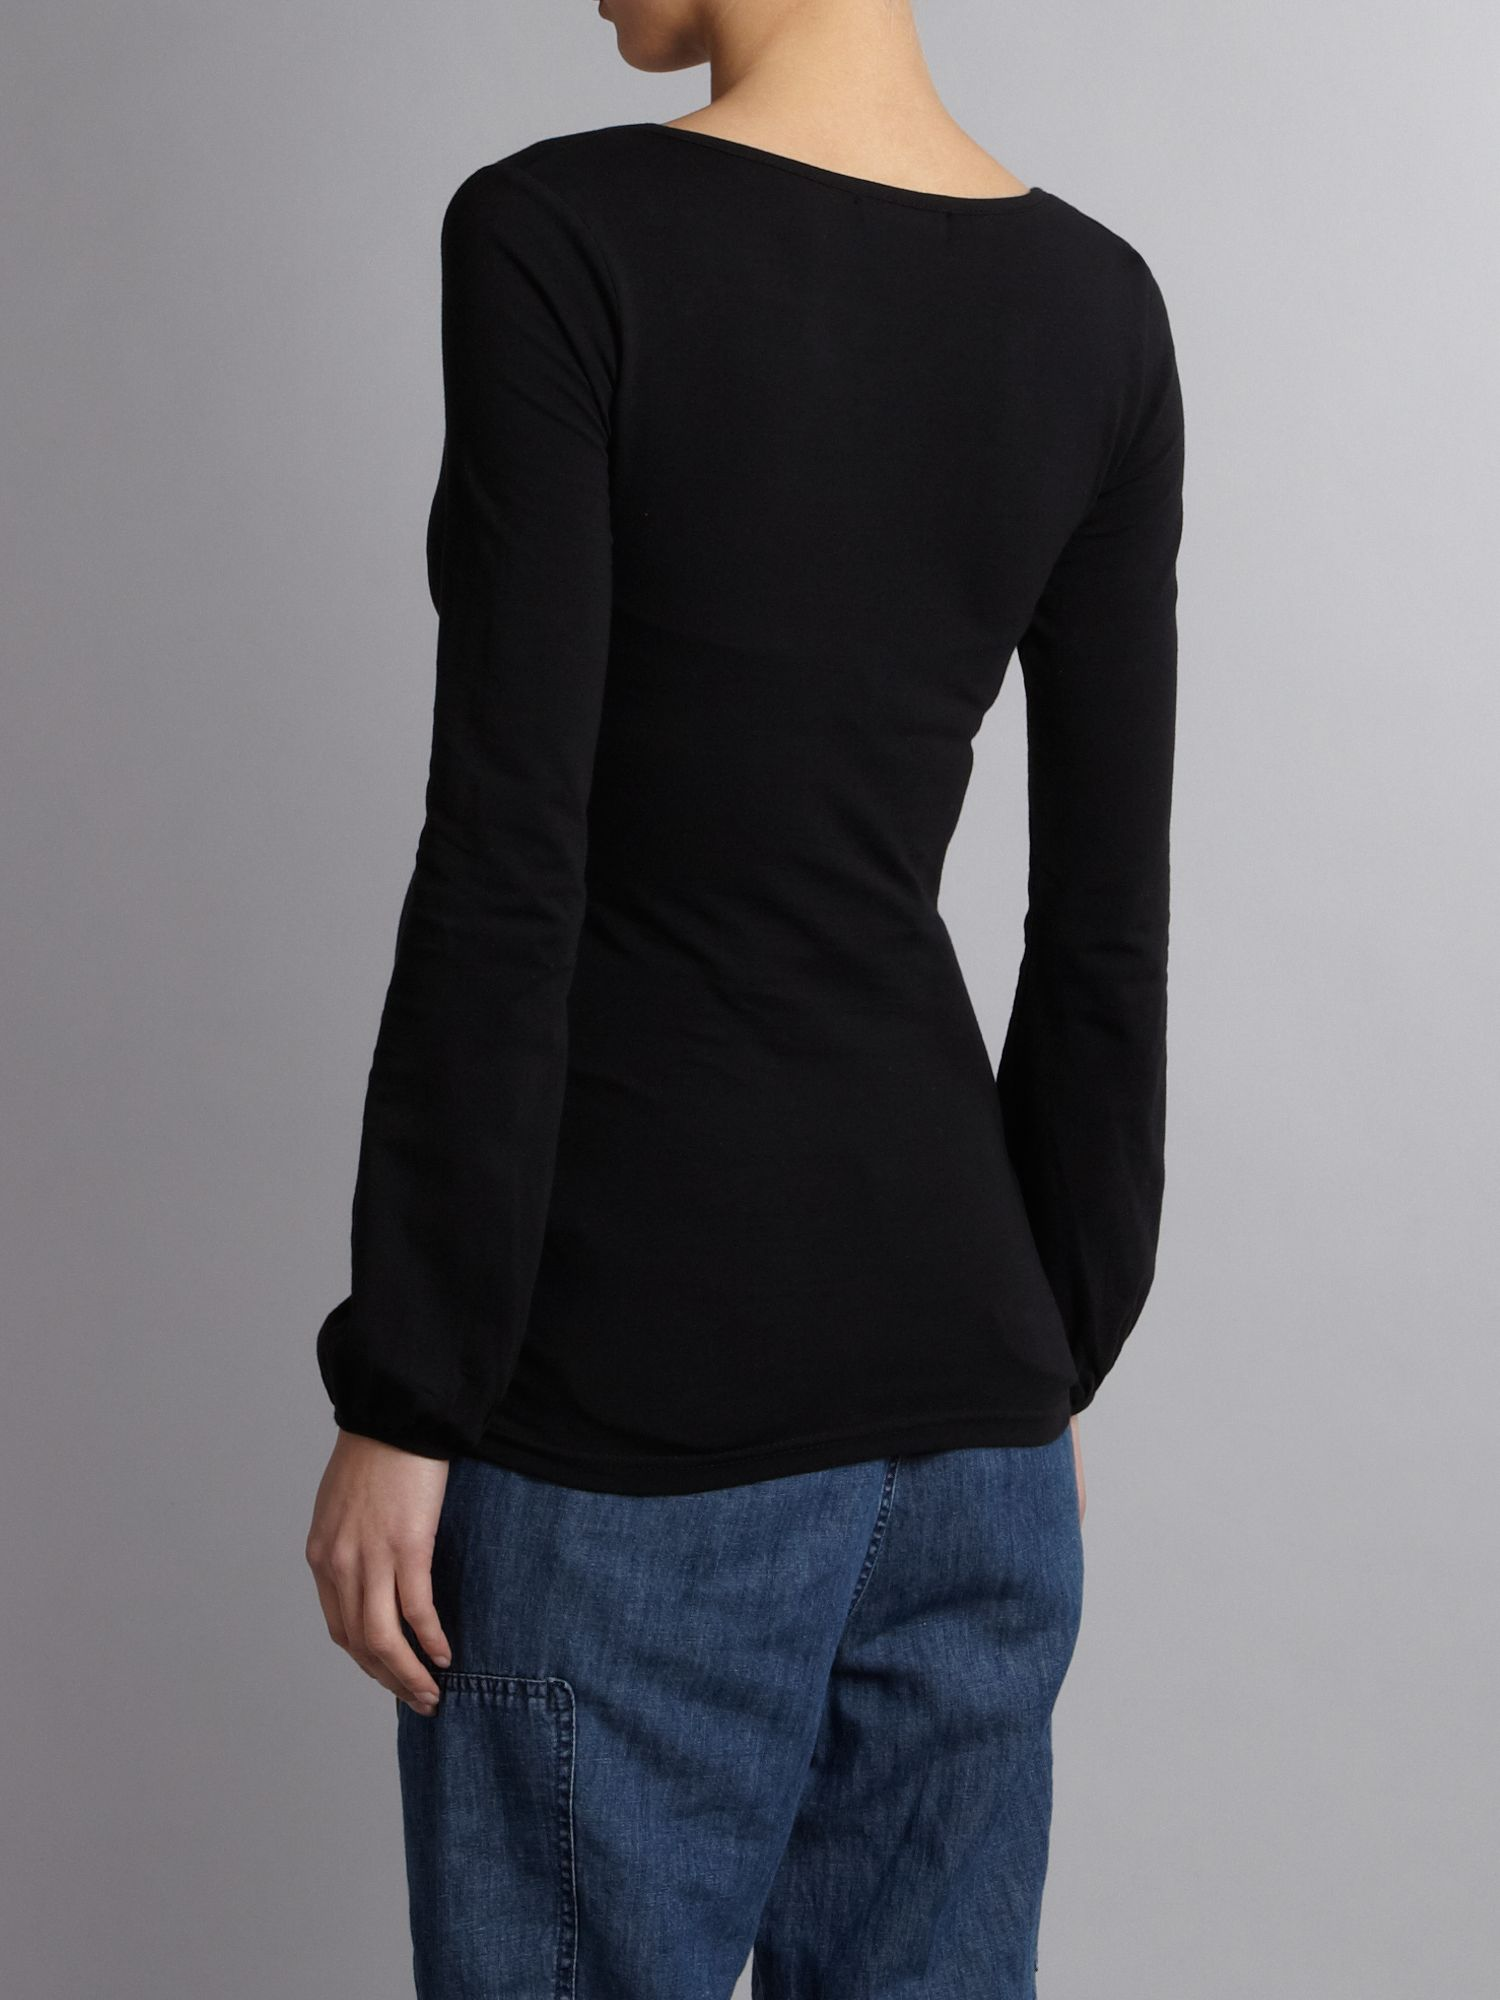 lyst mama licious basic long sleeve maternity top in black. Black Bedroom Furniture Sets. Home Design Ideas